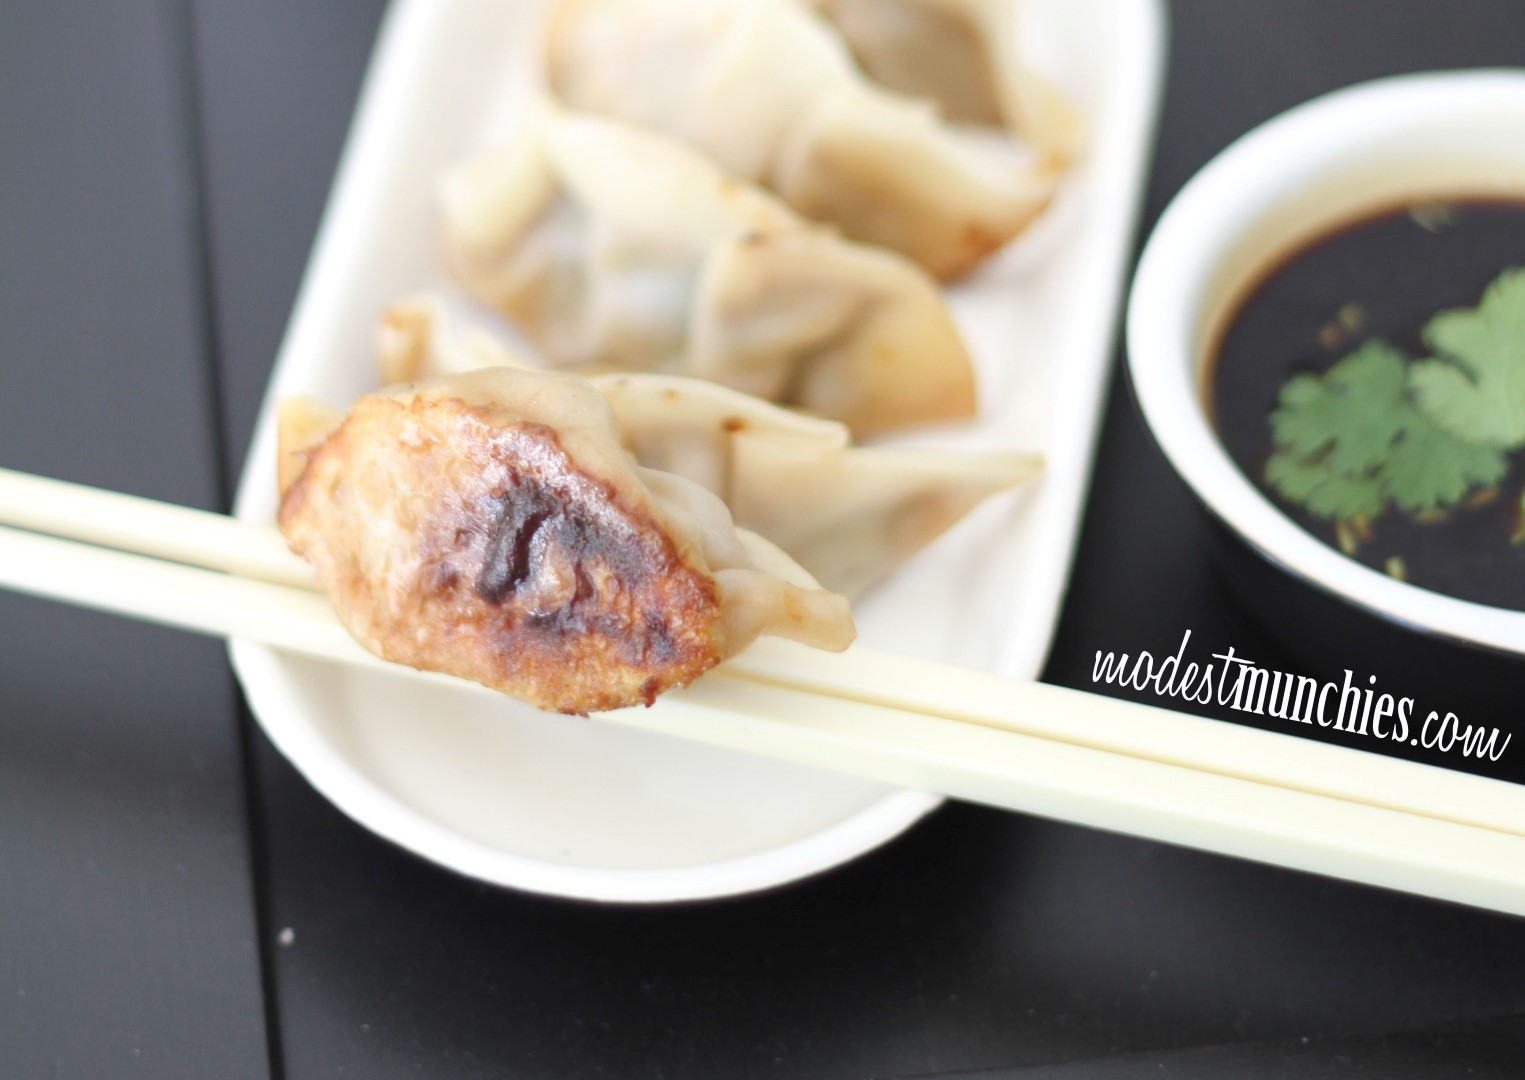 potsticker dumplings (Large)